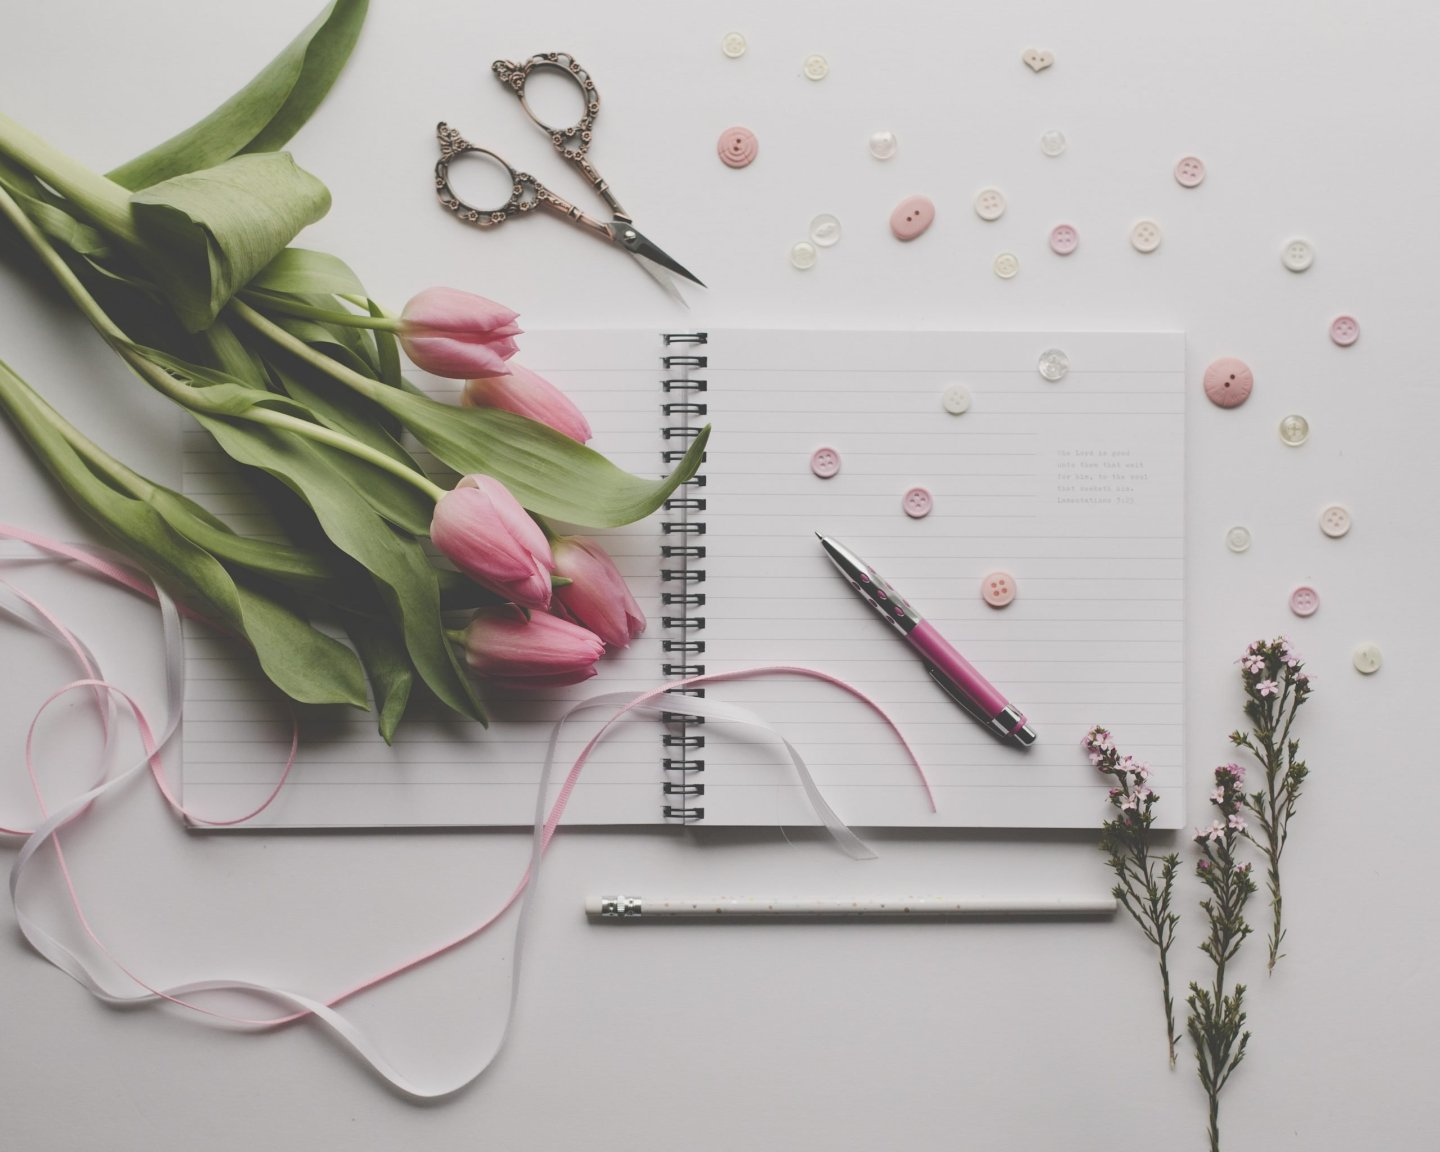 77 Journaling Prompts For Your Best Life